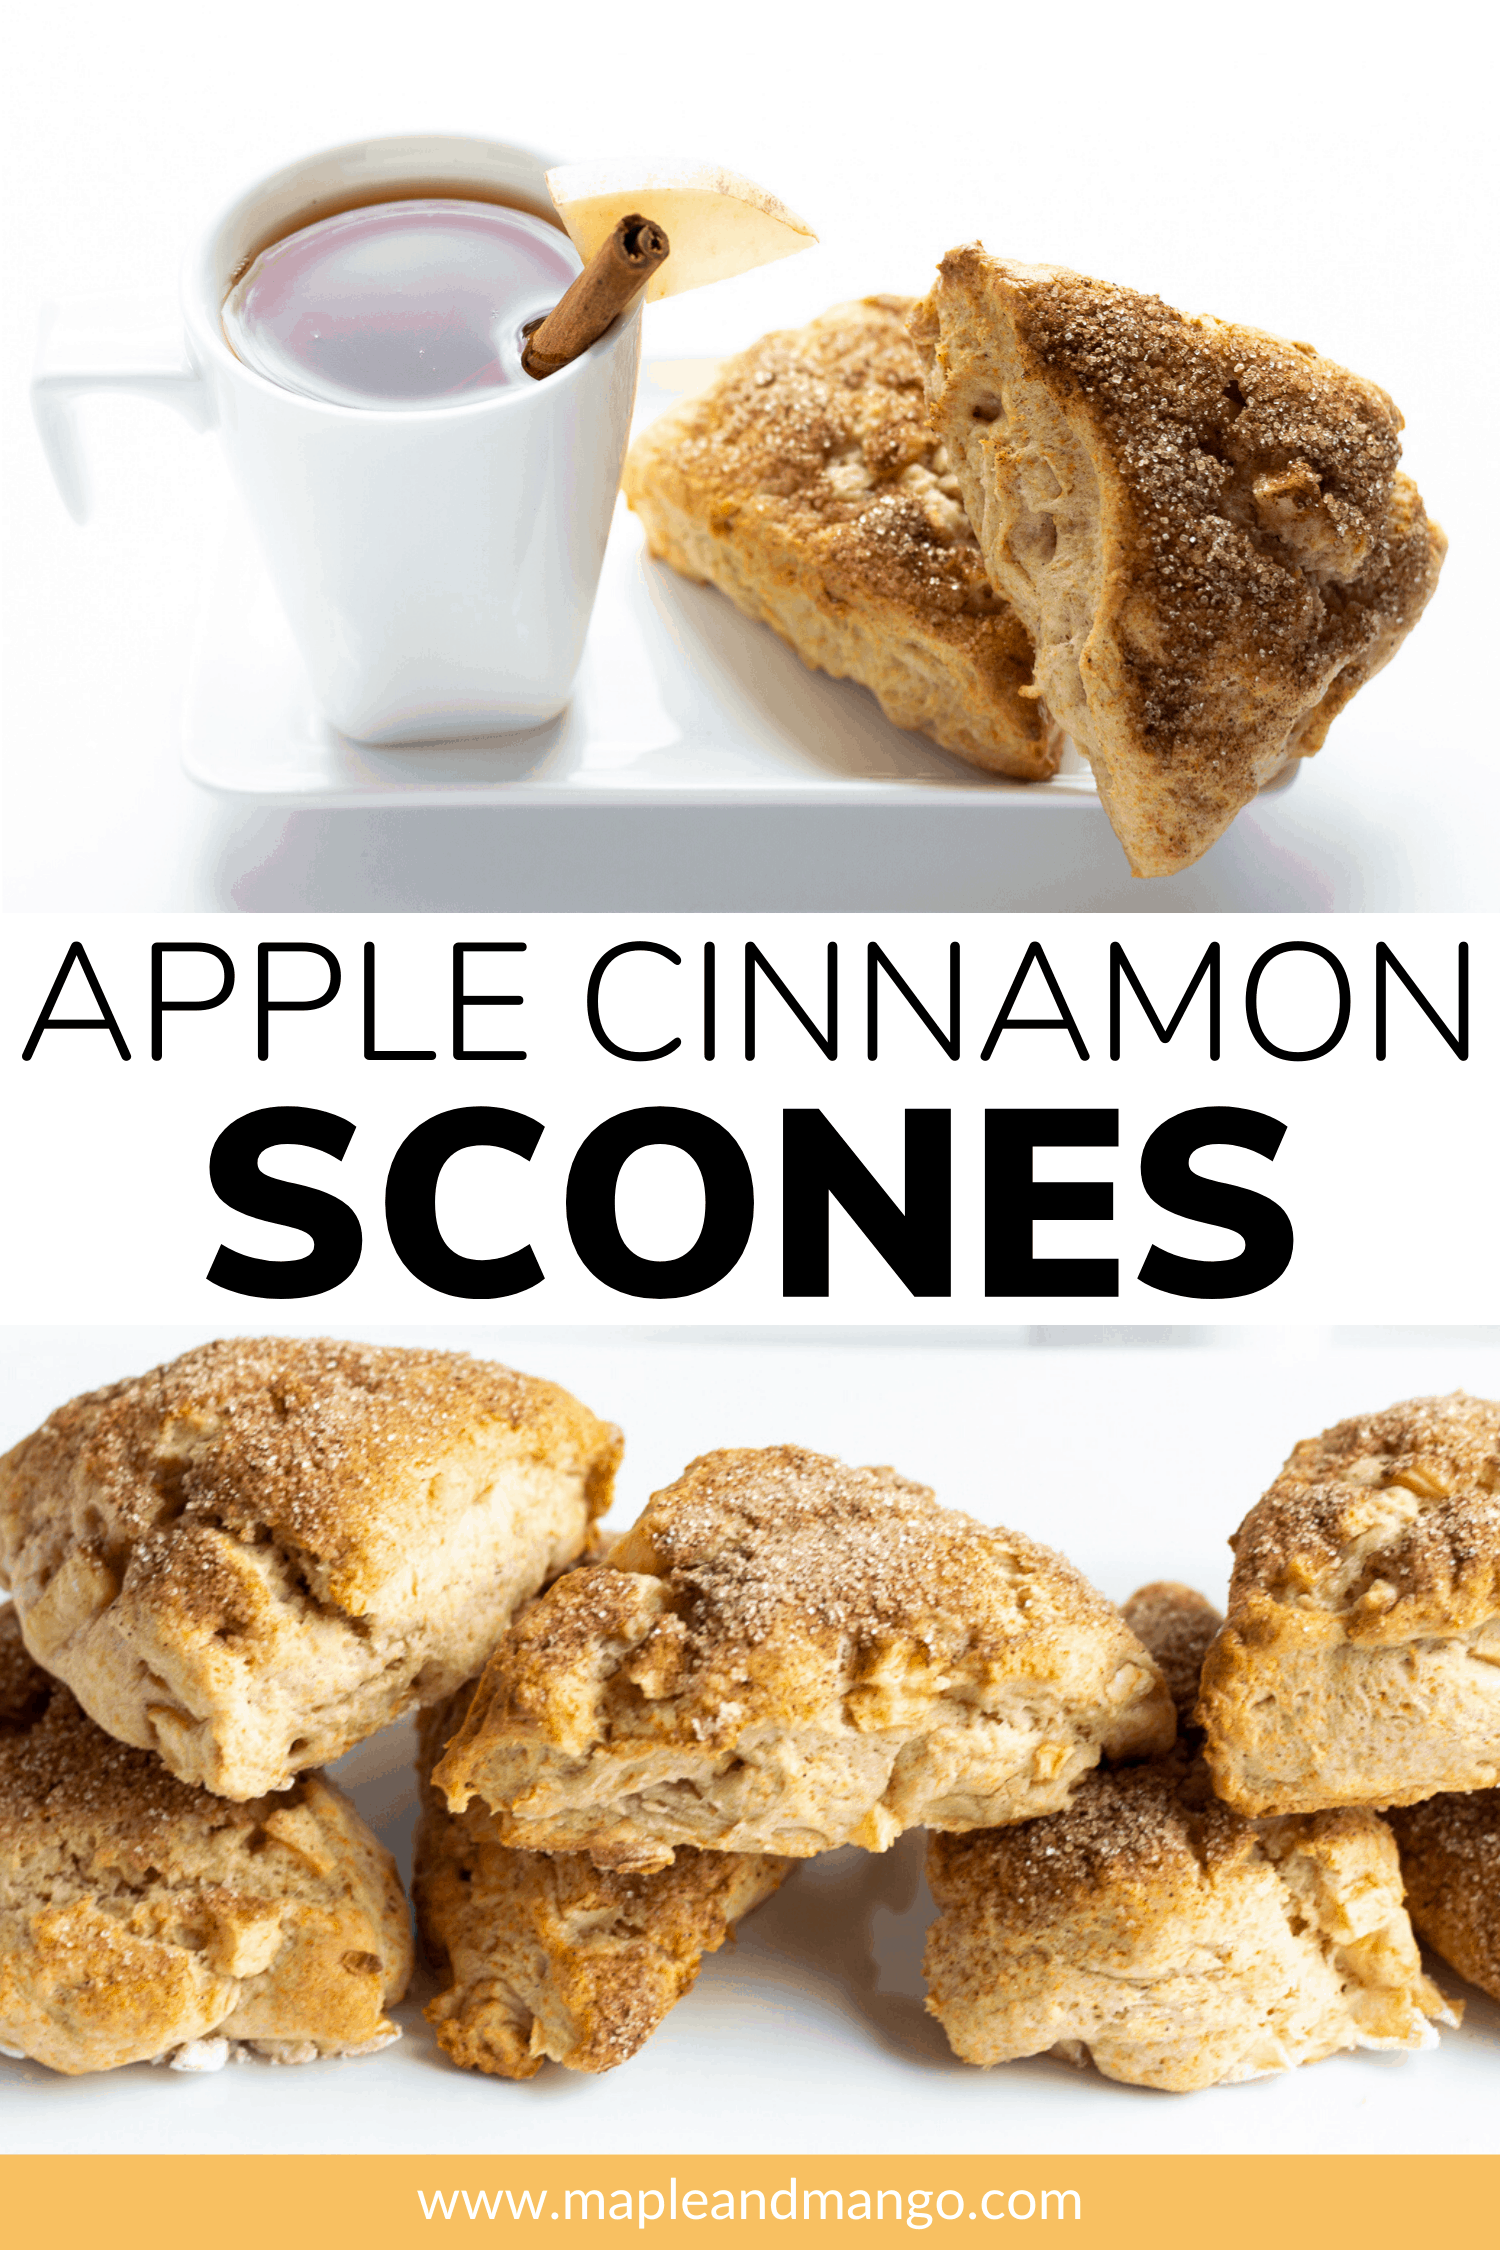 Pinterest image with text overlay for Apple Cinnamon Scones